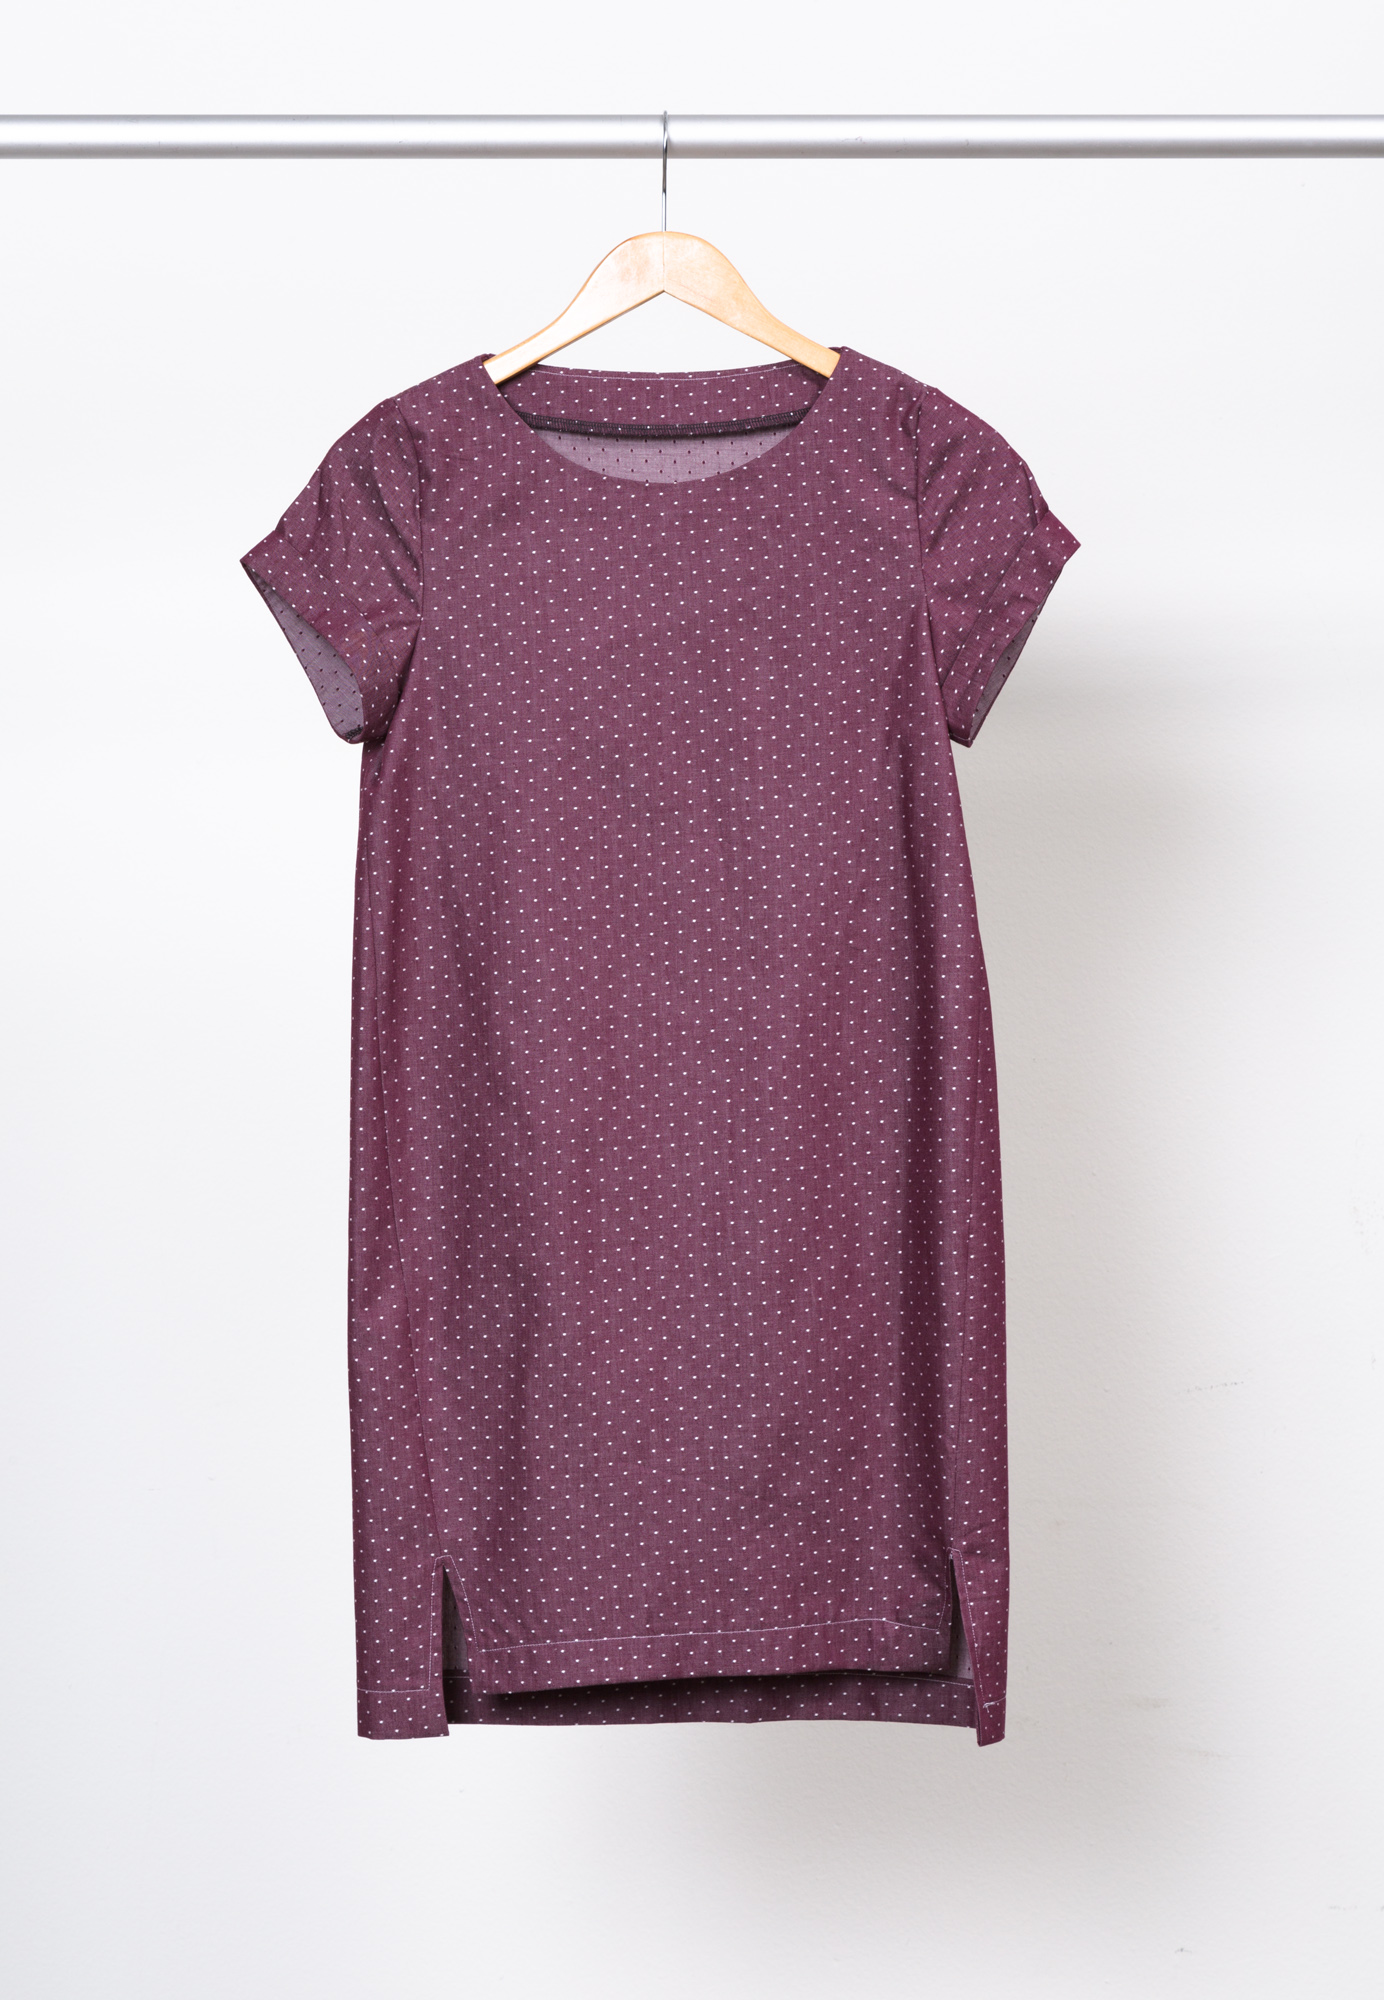 INARI TEE DRESS   BY   NAMED CLOTHING ,  COTTON CHAMBRAY DOTS